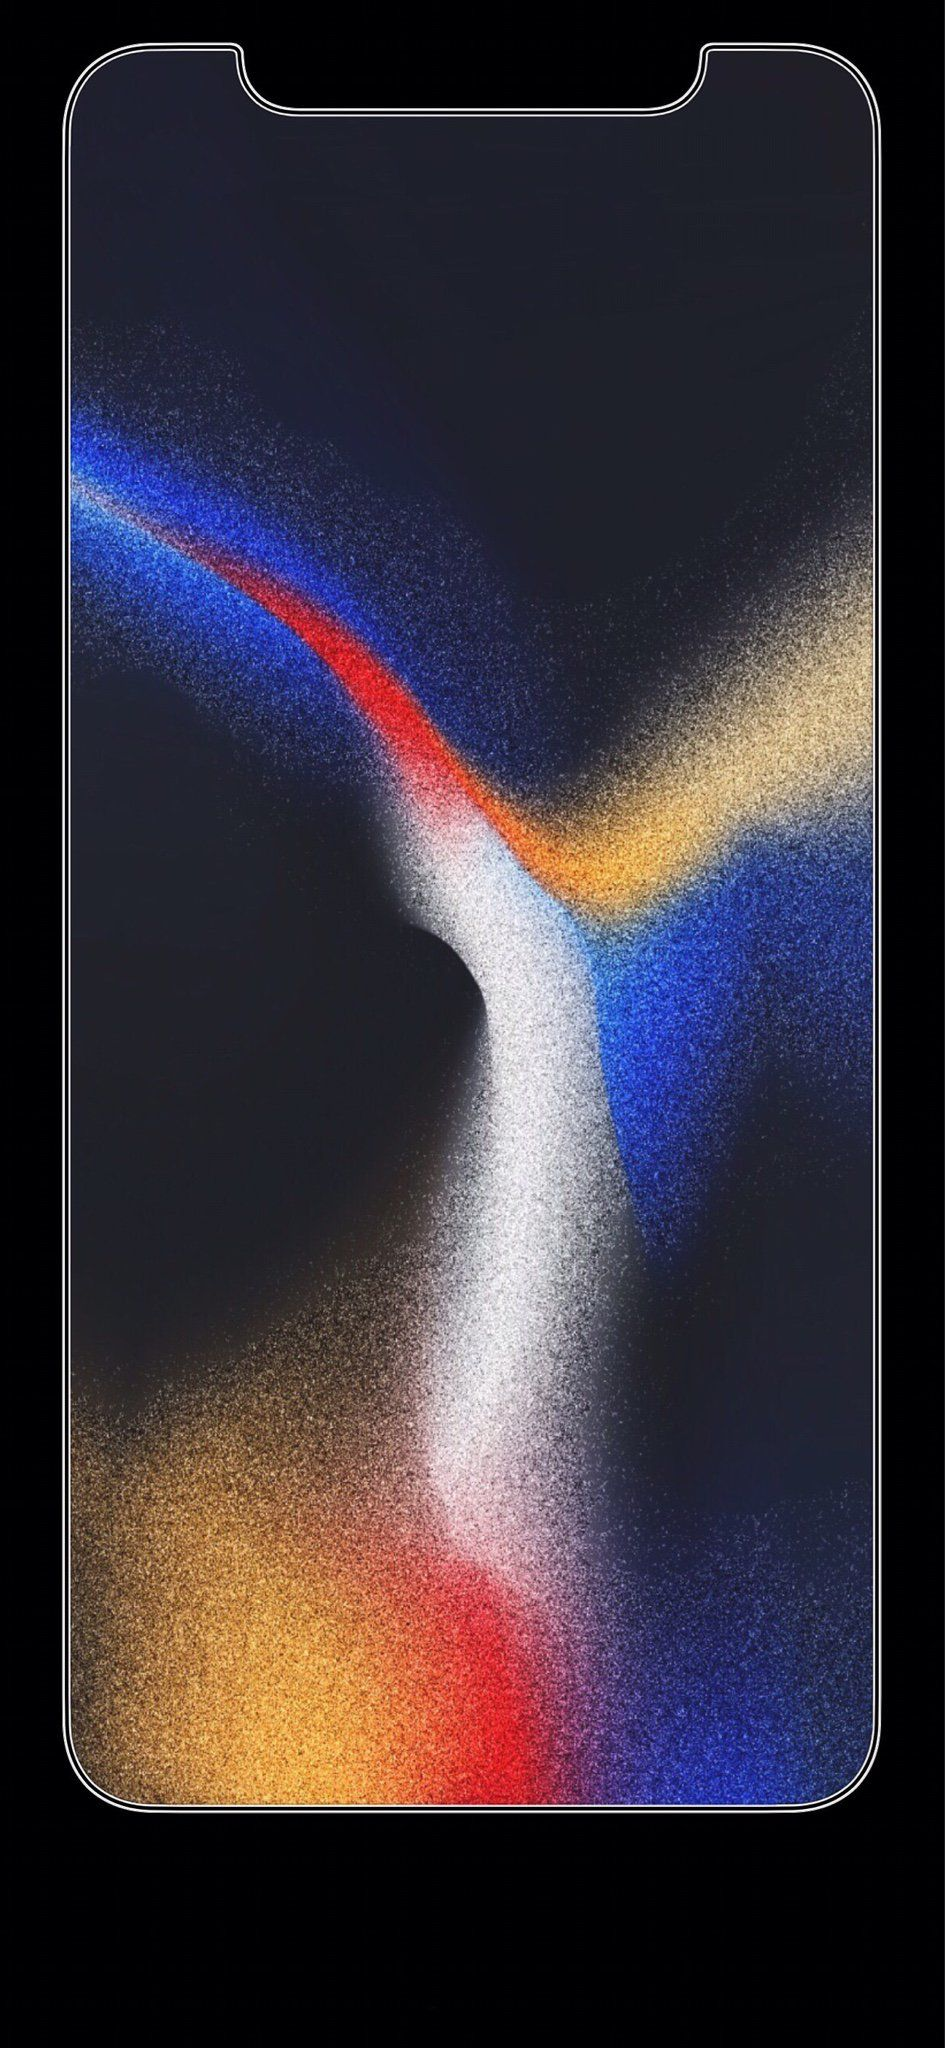 The iPhone X Wallpaper Thread - Page 29 - iPhone, iPad, iPod Forums at iMore.com